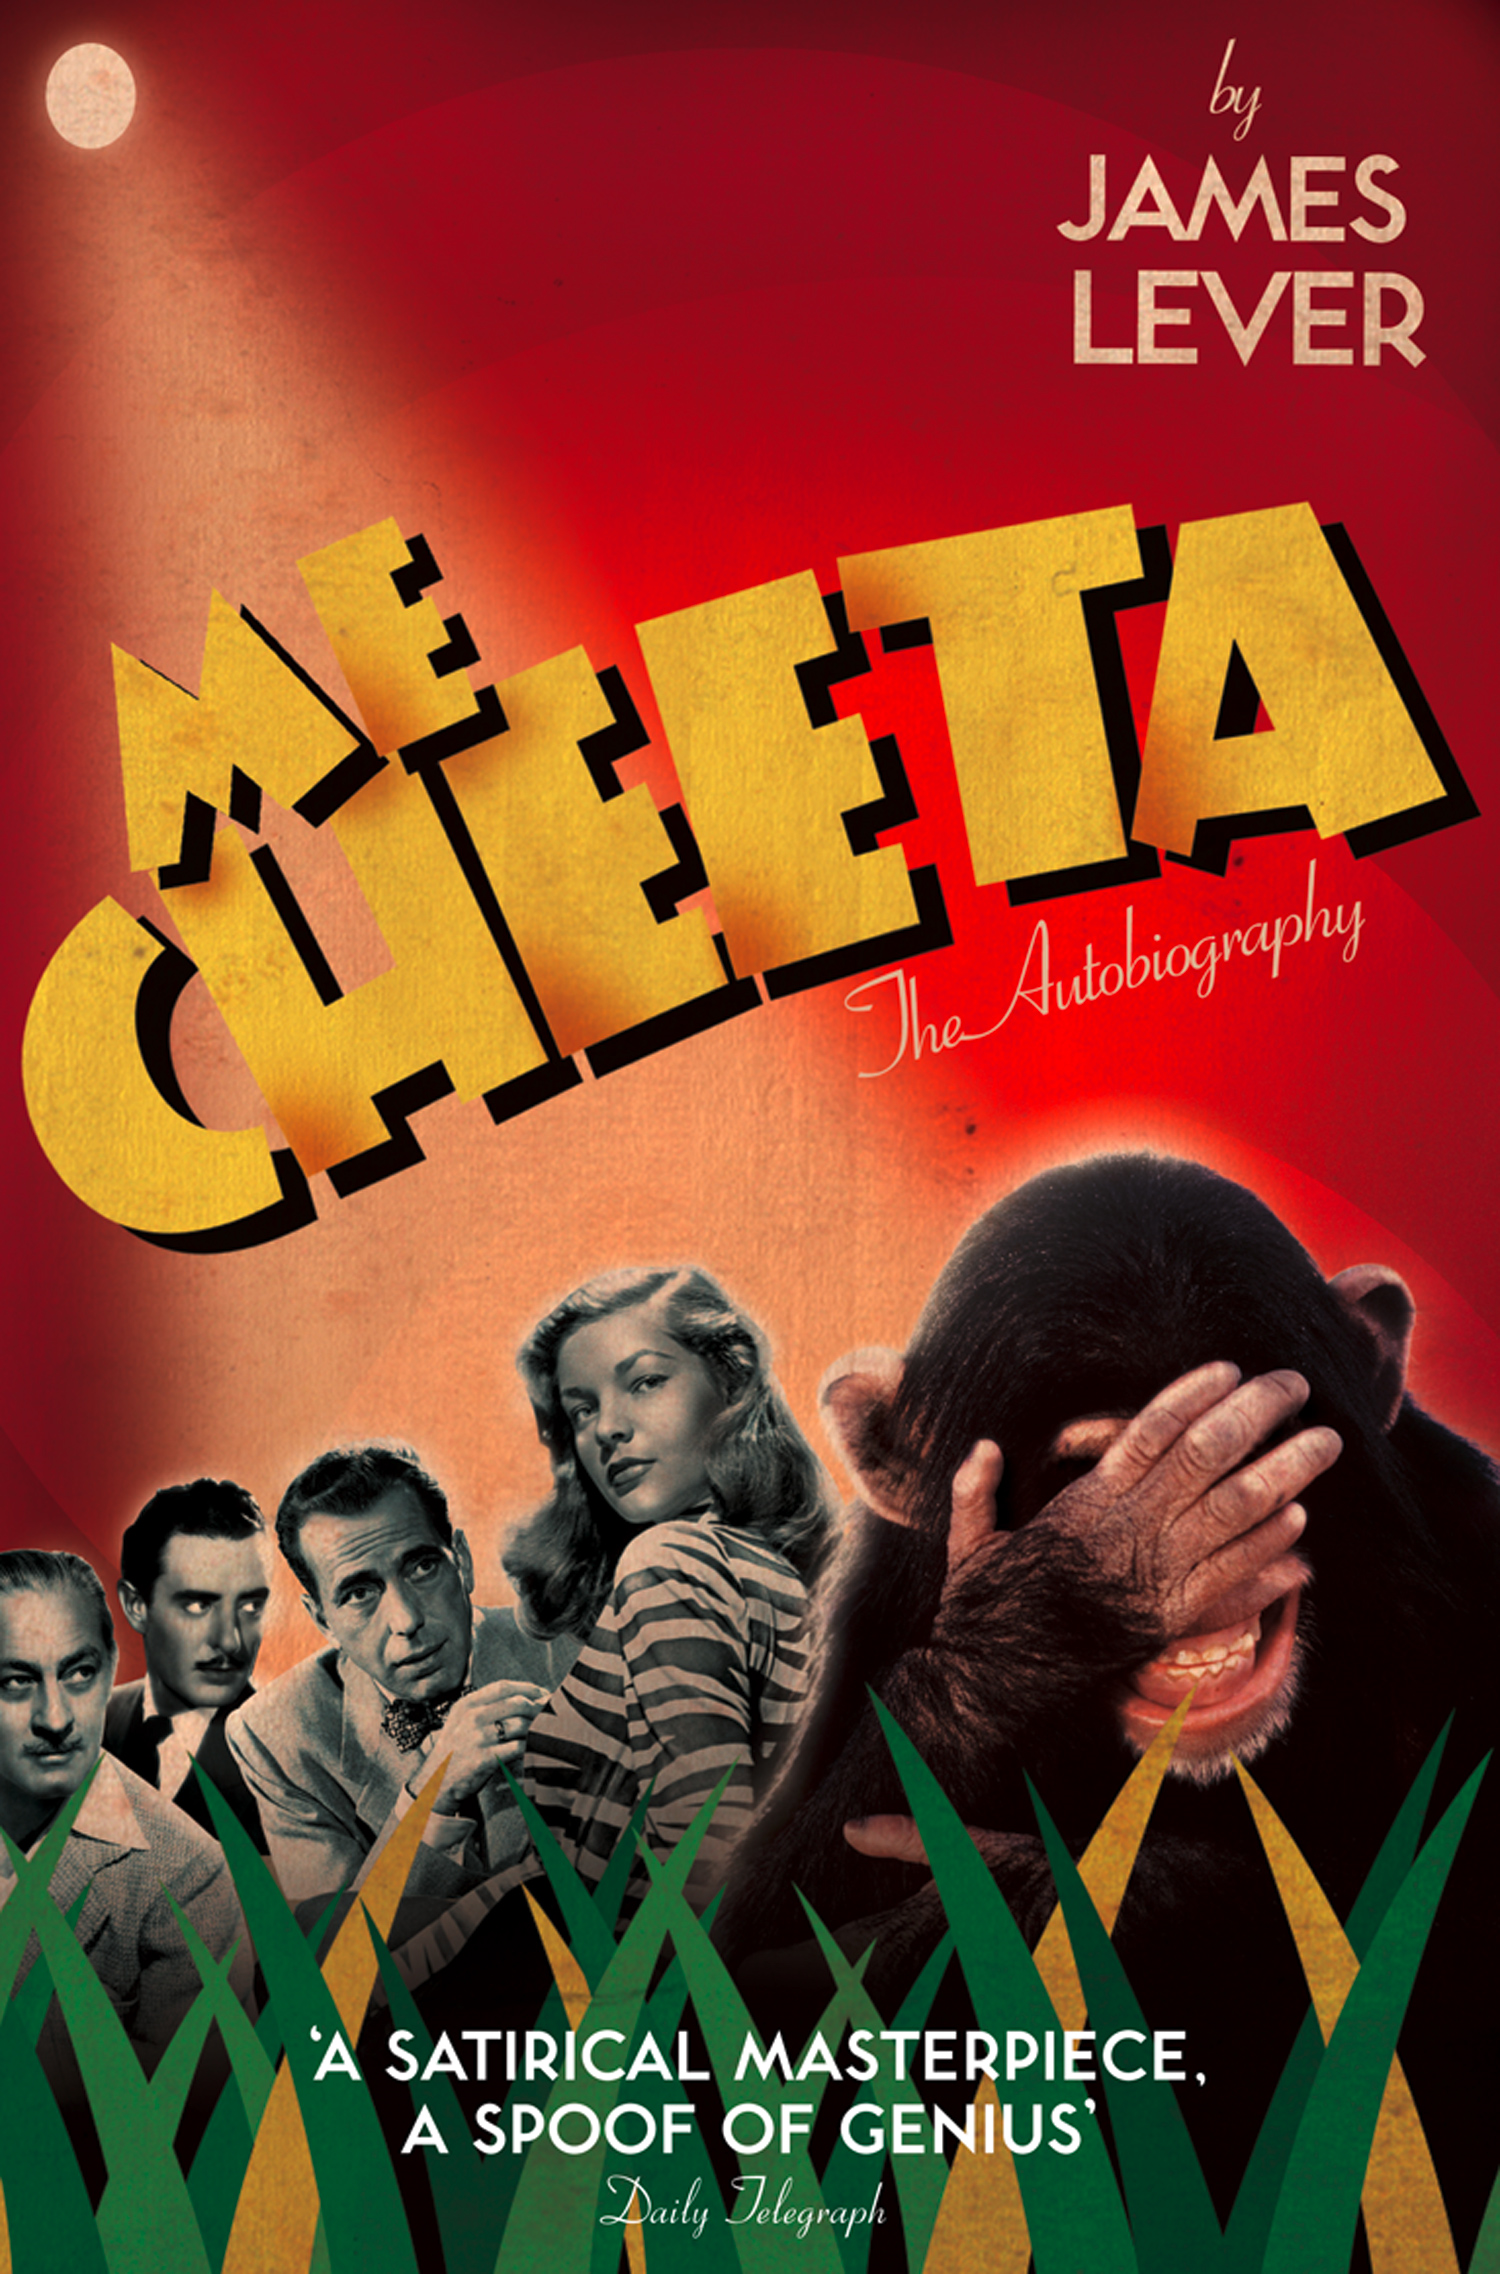 Me Cheeta: The Autobiography